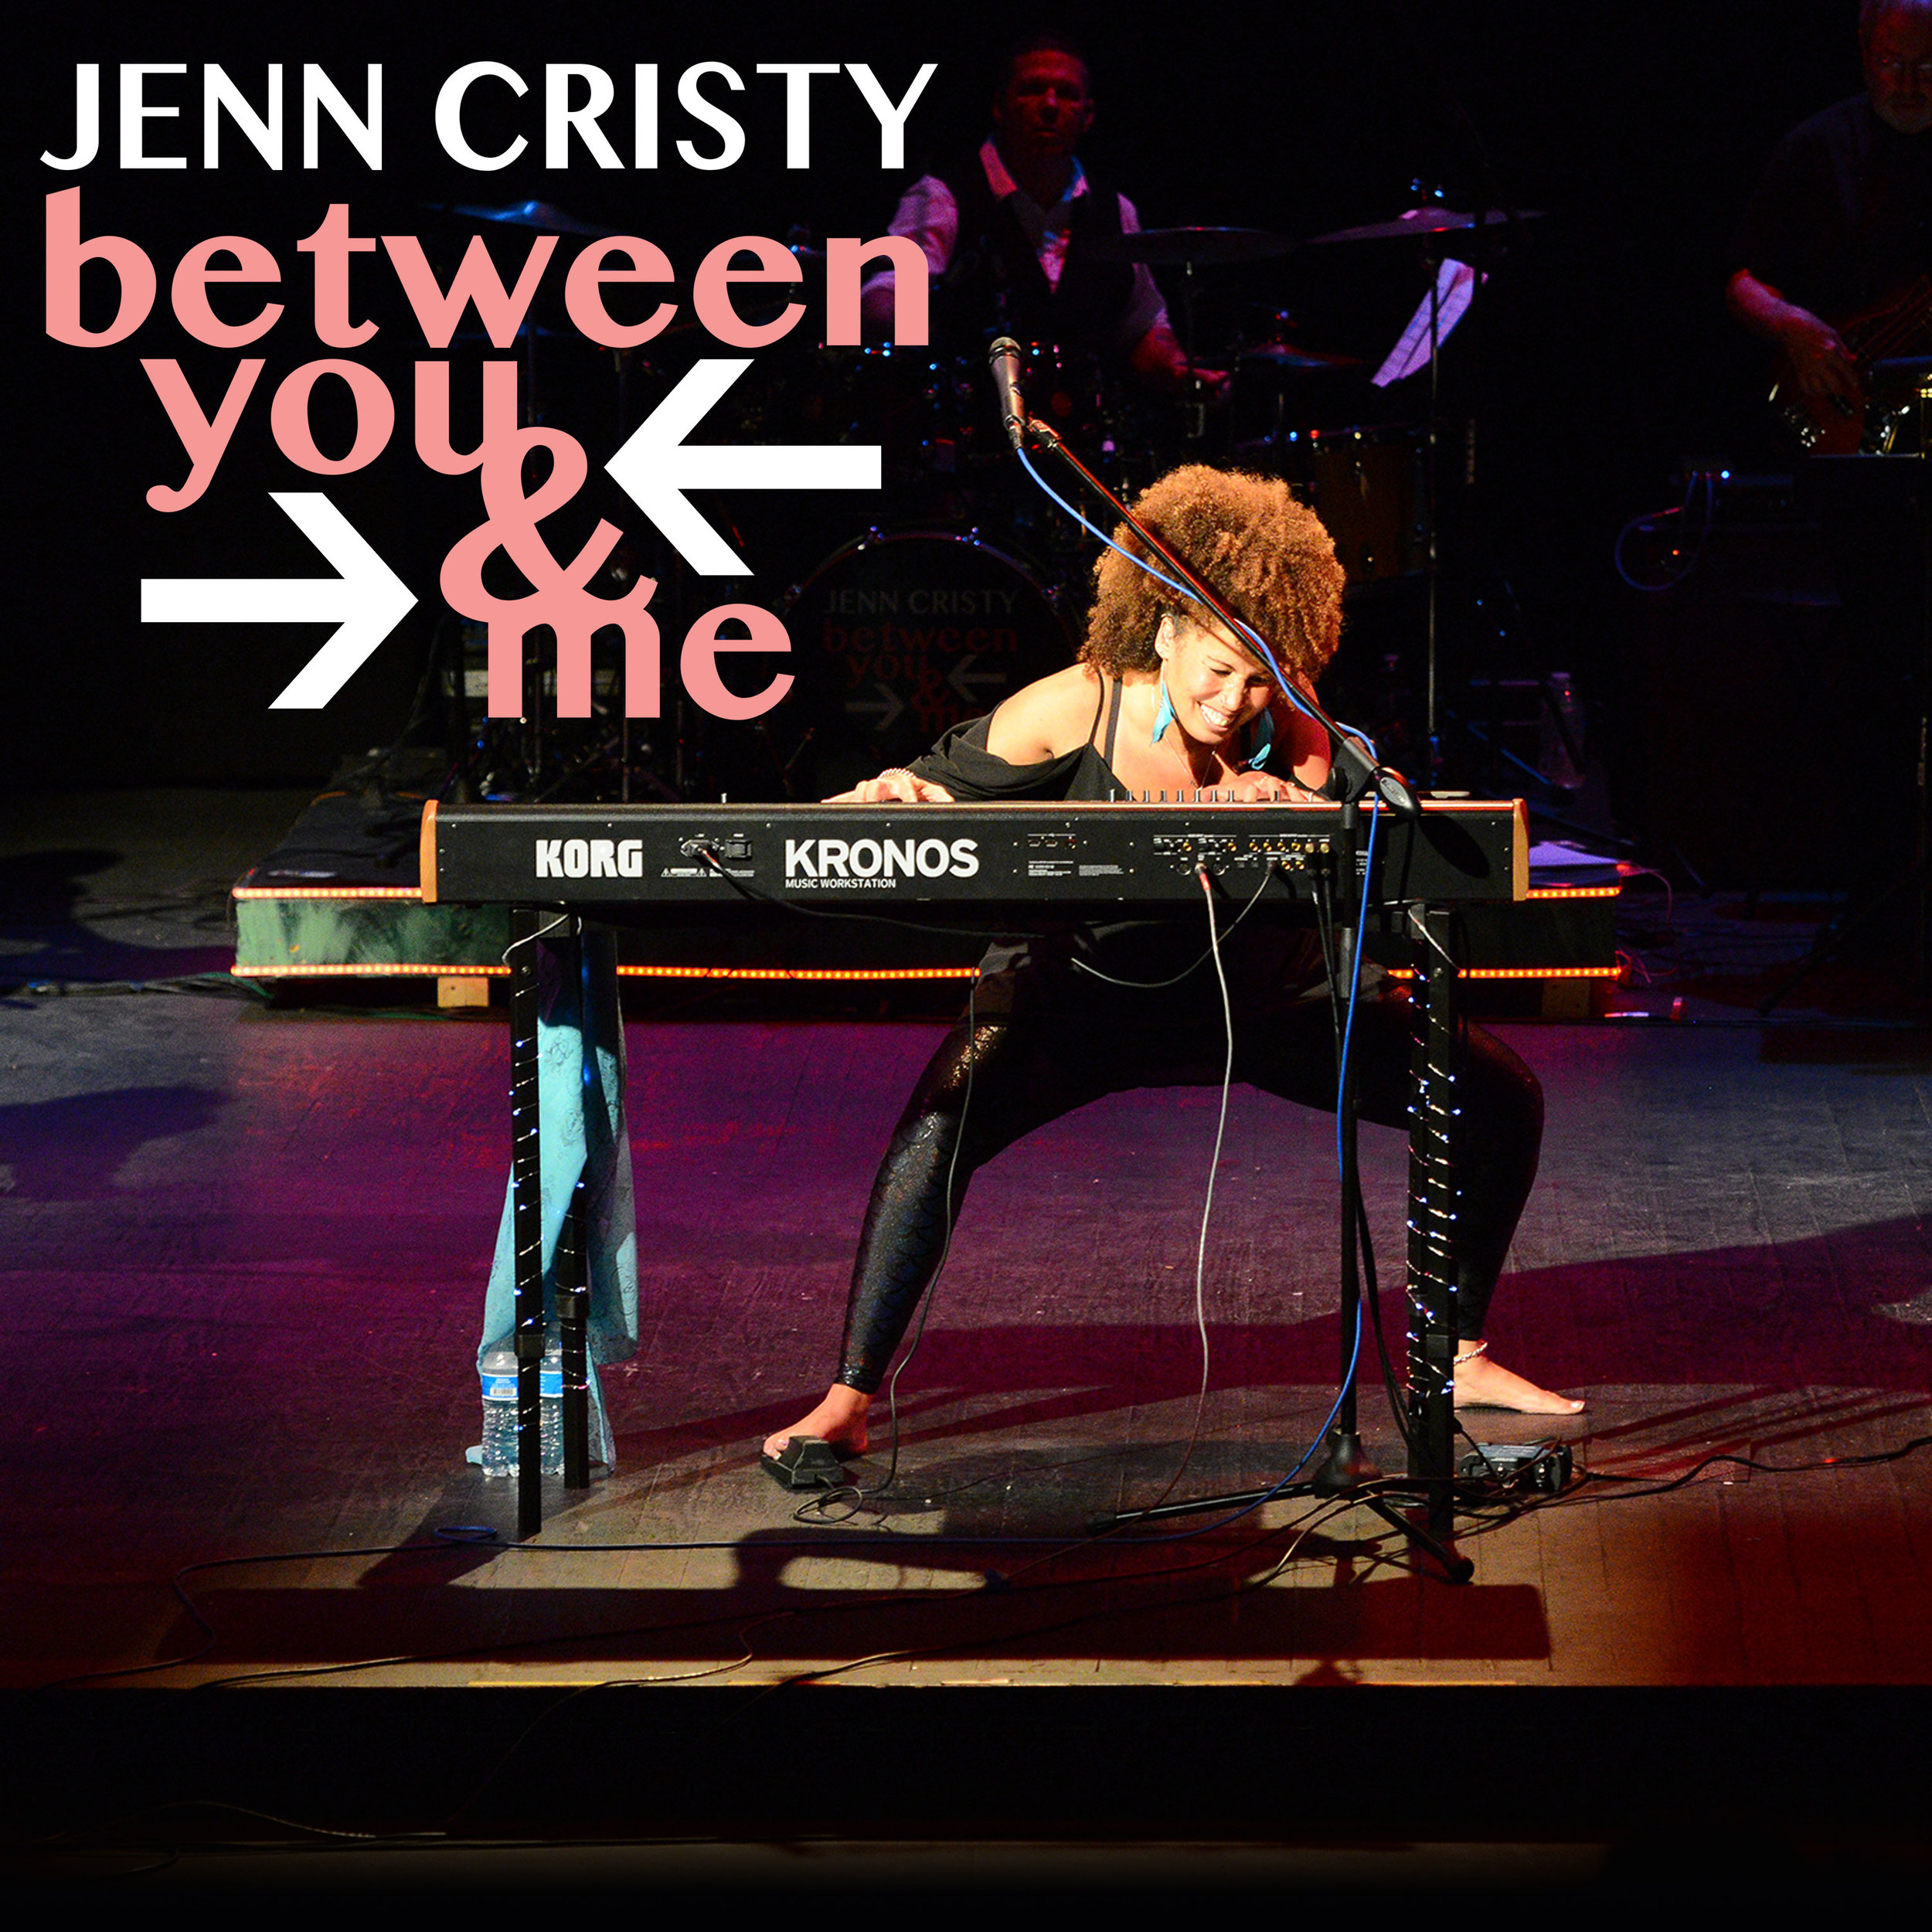 Between-You-and-Me-Live-album-cover.jpg